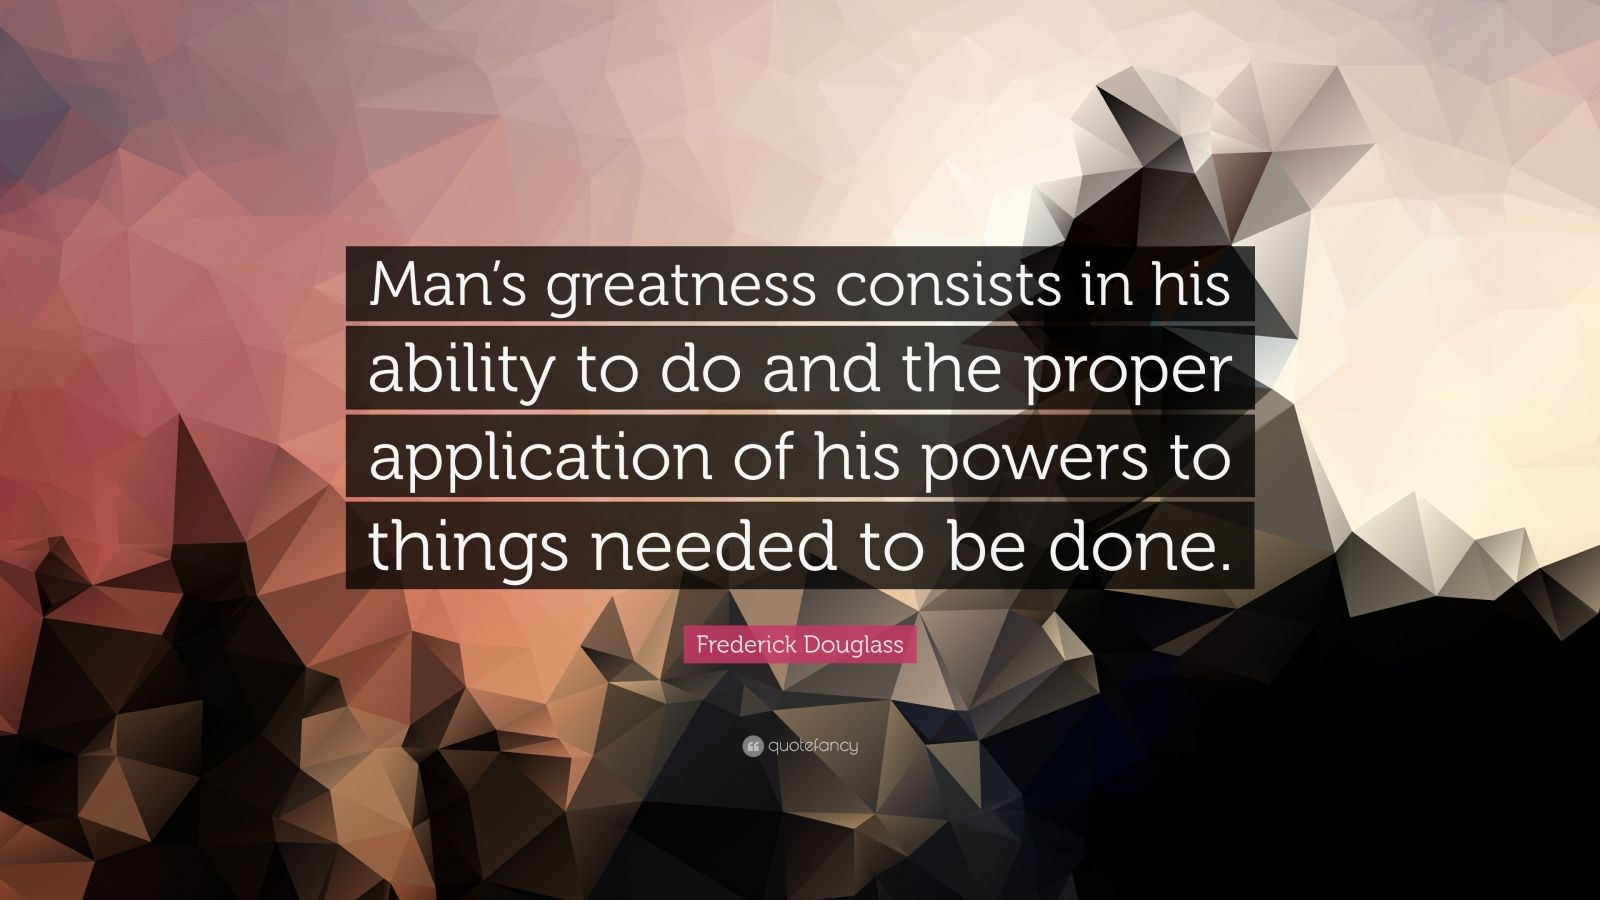 frederick douglass quotes quotefancy frederick douglass quote ldqu s greatness consists in his ability to do and the proper